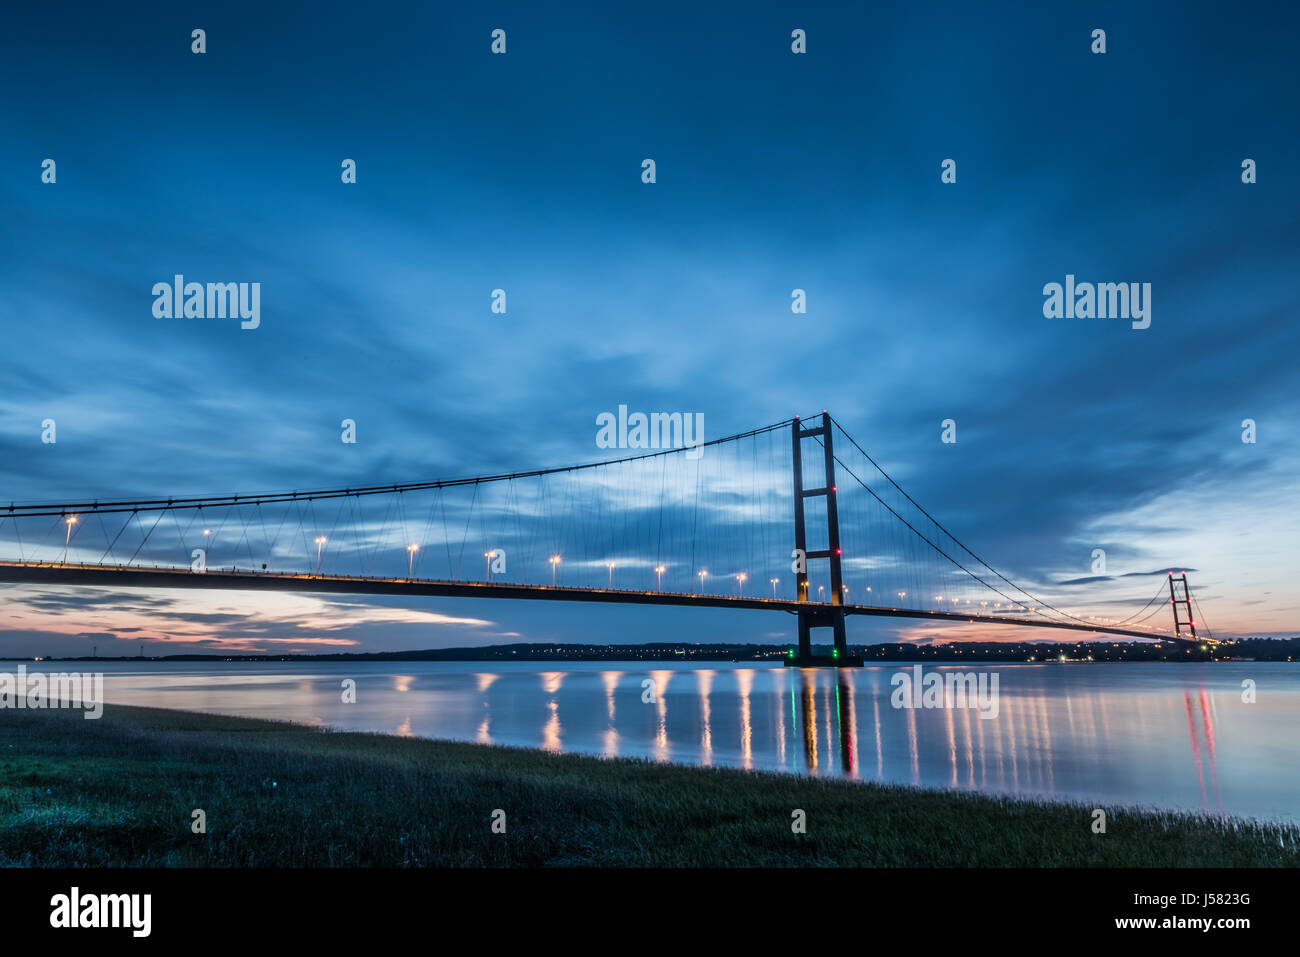 Humber Bridge at dusk - Stock Image